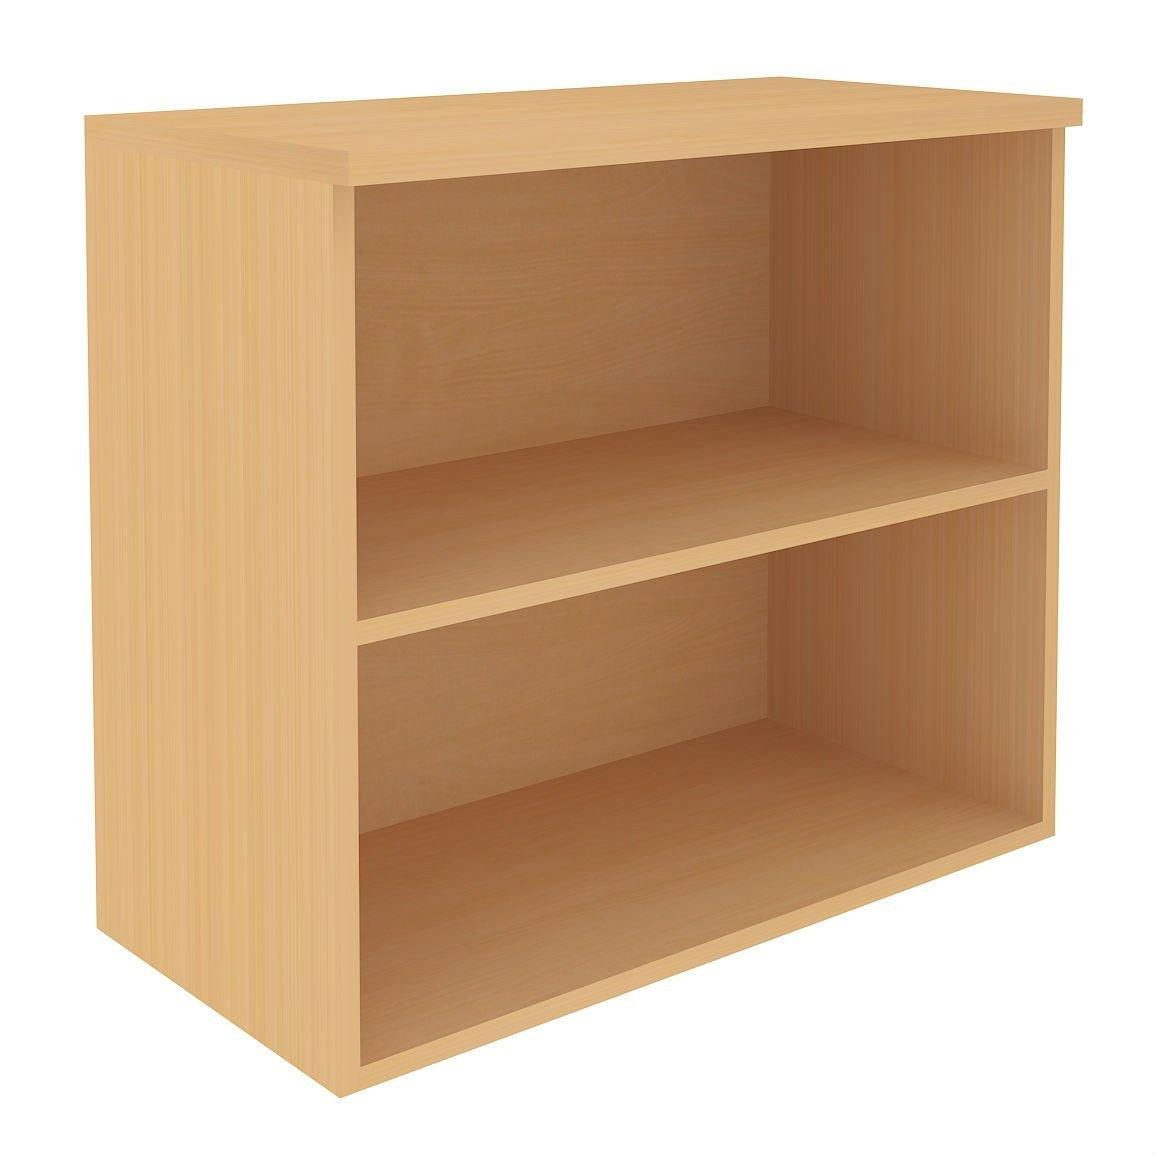 Desk Height Cupboard, Shallow open front unit with 1 shelf, W800-0